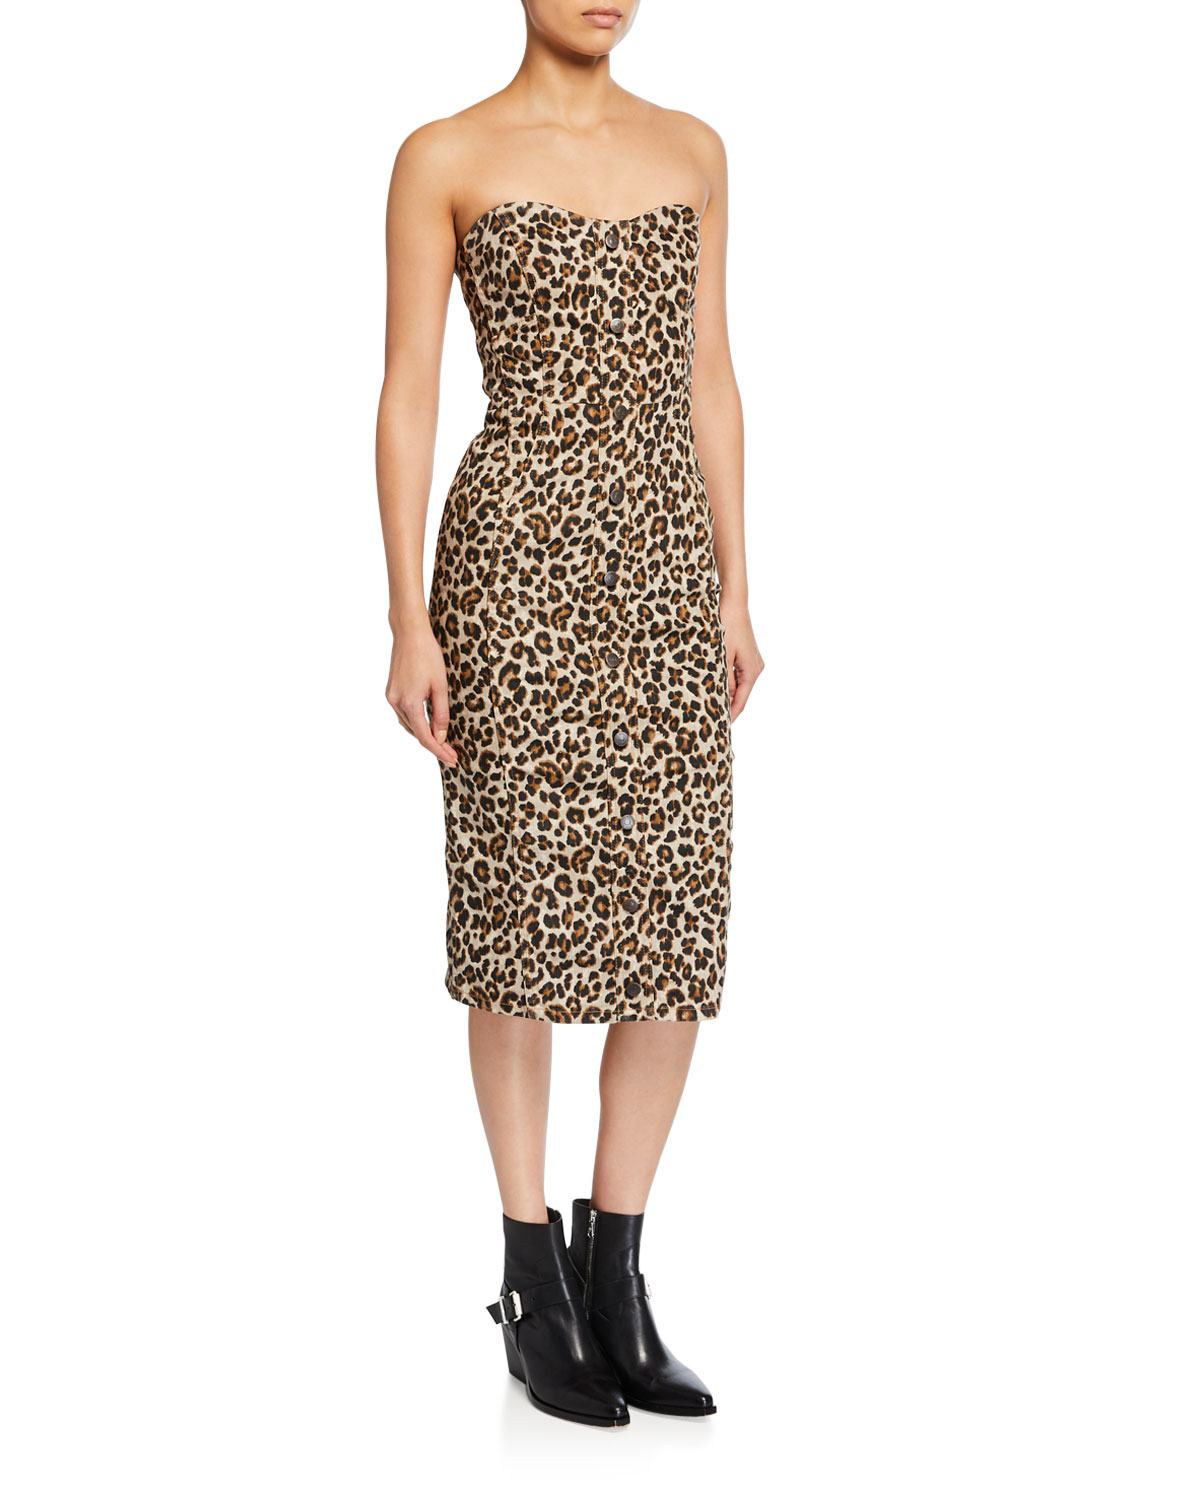 Veronica Beard Liza Leopard-Print Strapless Dress  21bc1965a